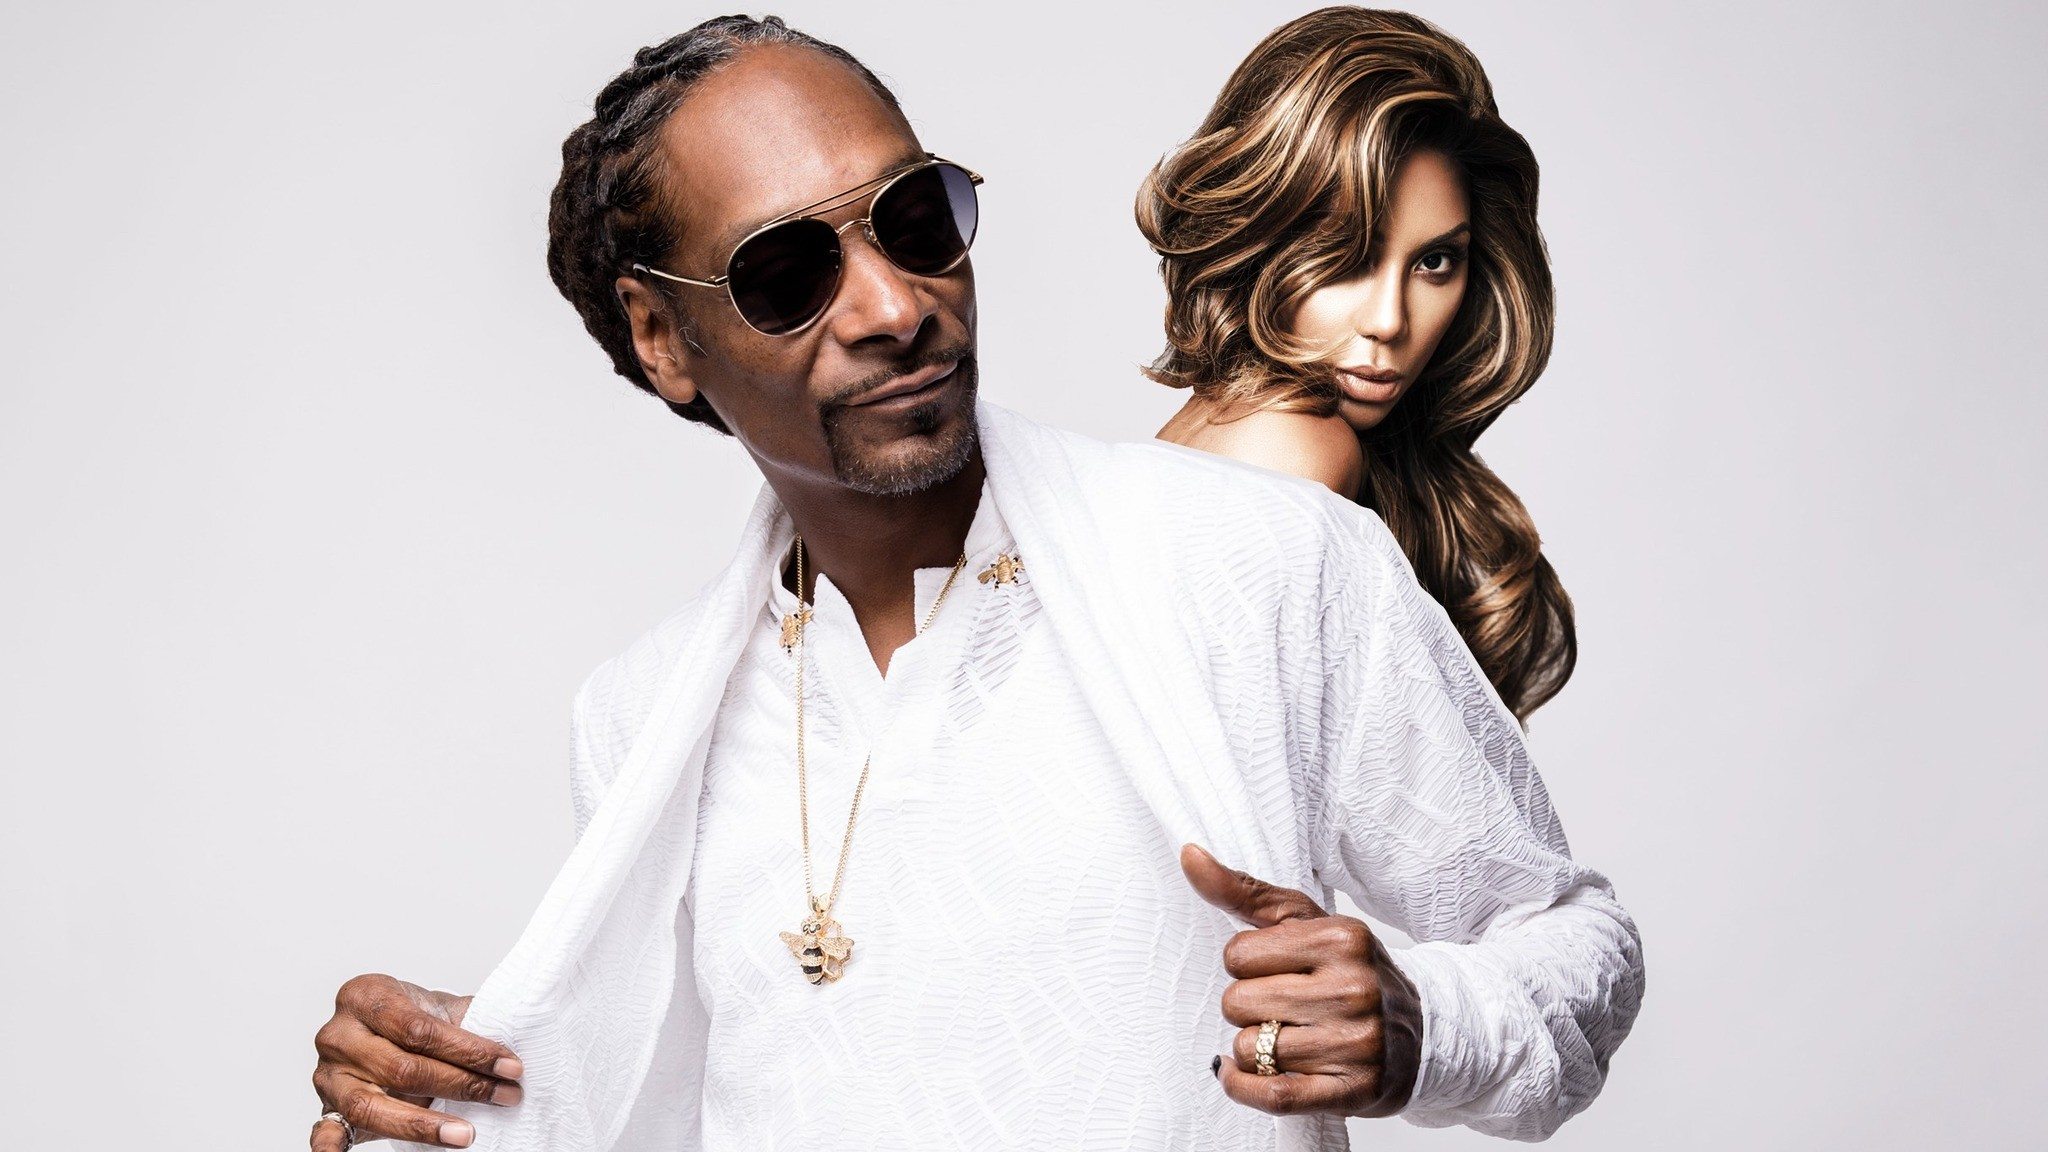 Redemption of a Dogg, starring Snoop Dogg and Tamar Braxton, comes to the Kings Theatre on October 14.